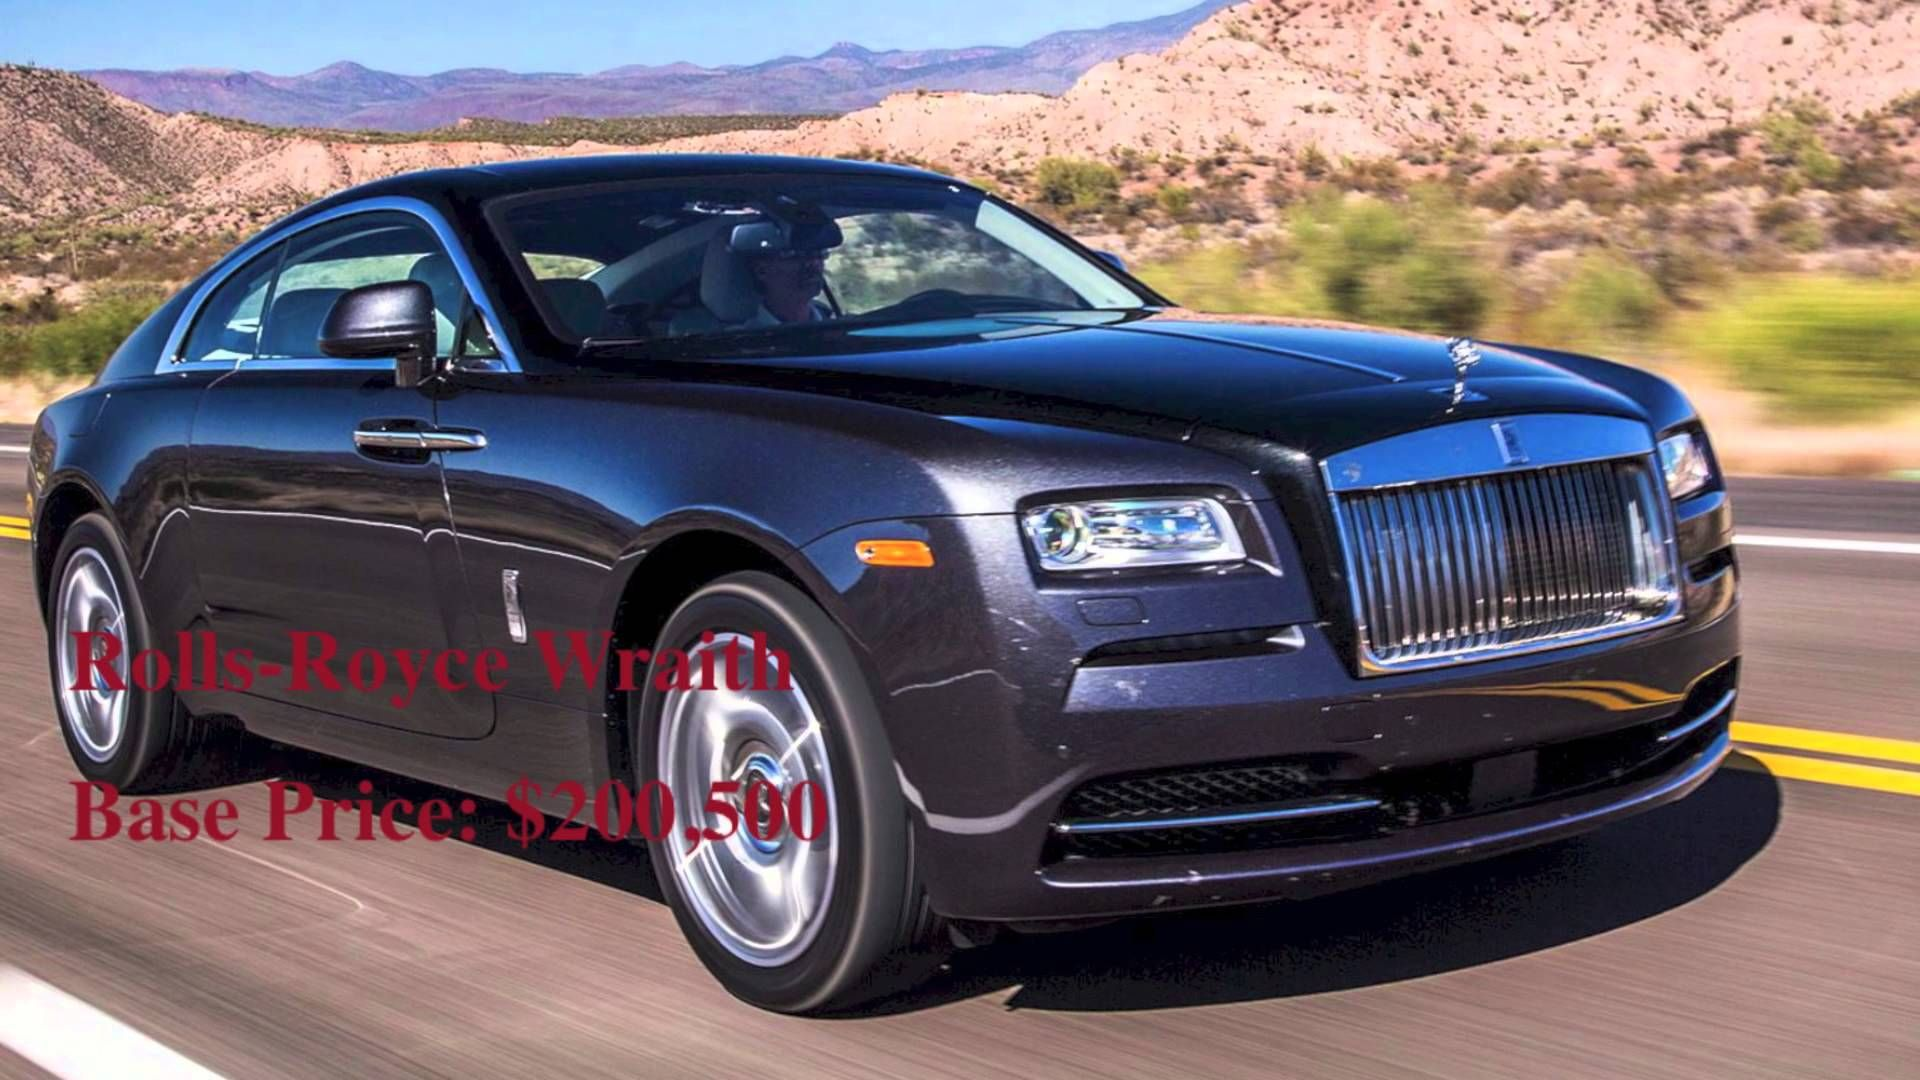 2014 Top 10 Luxury Sedans: Top 10 Best Luxury Cars For 2014 #luxurycars